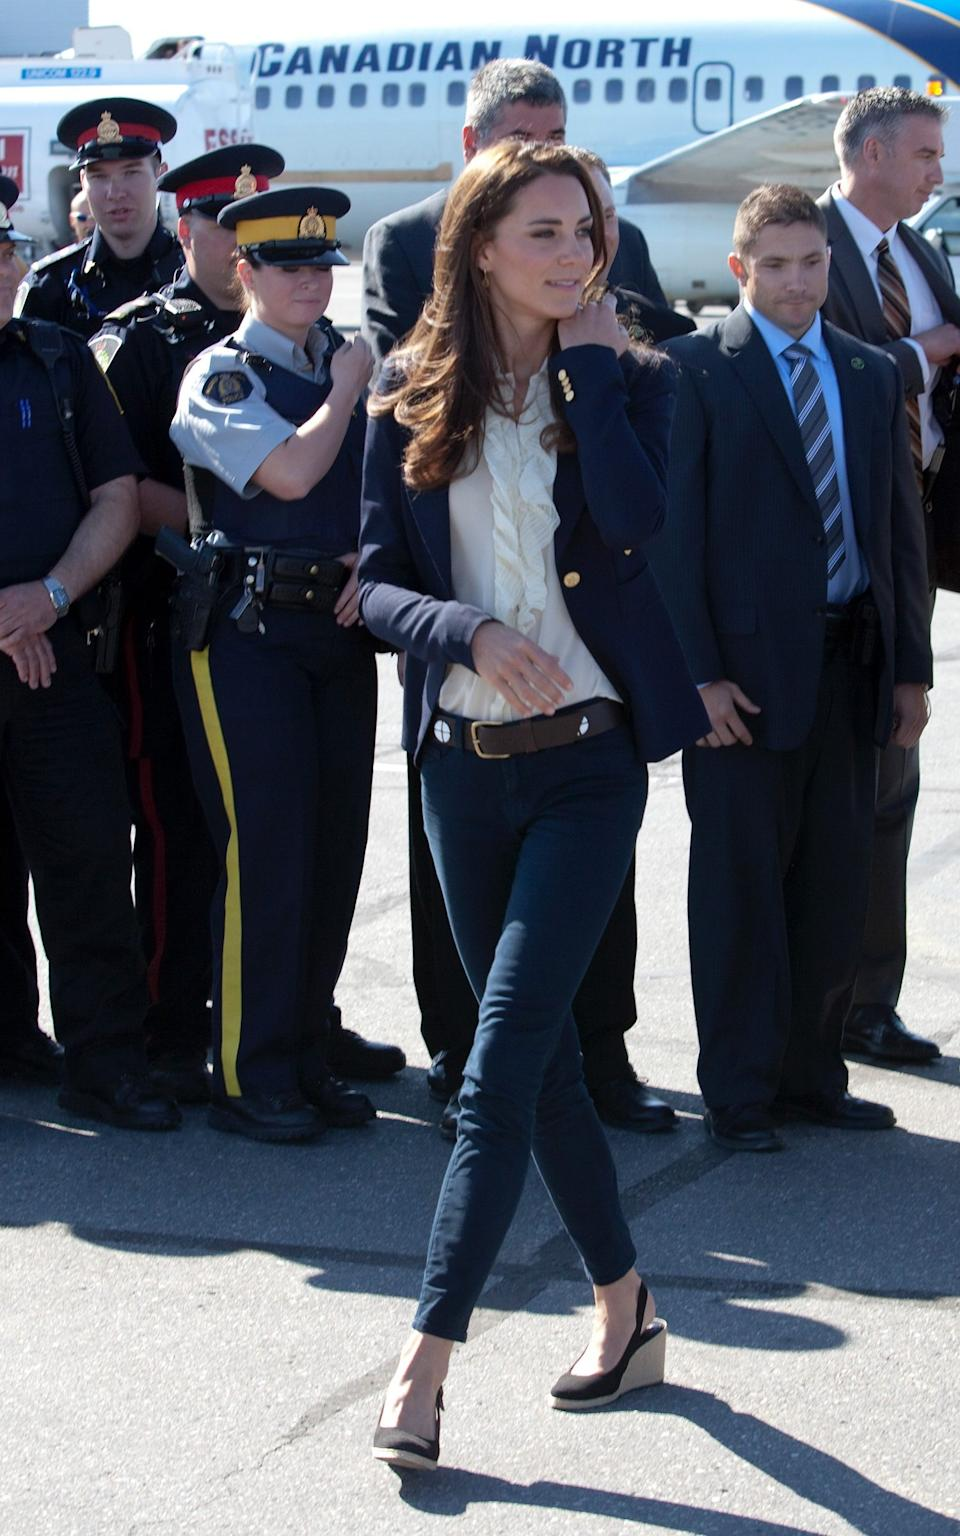 The Duchess of Cambridge in Canada, July 2011 - Wireimage